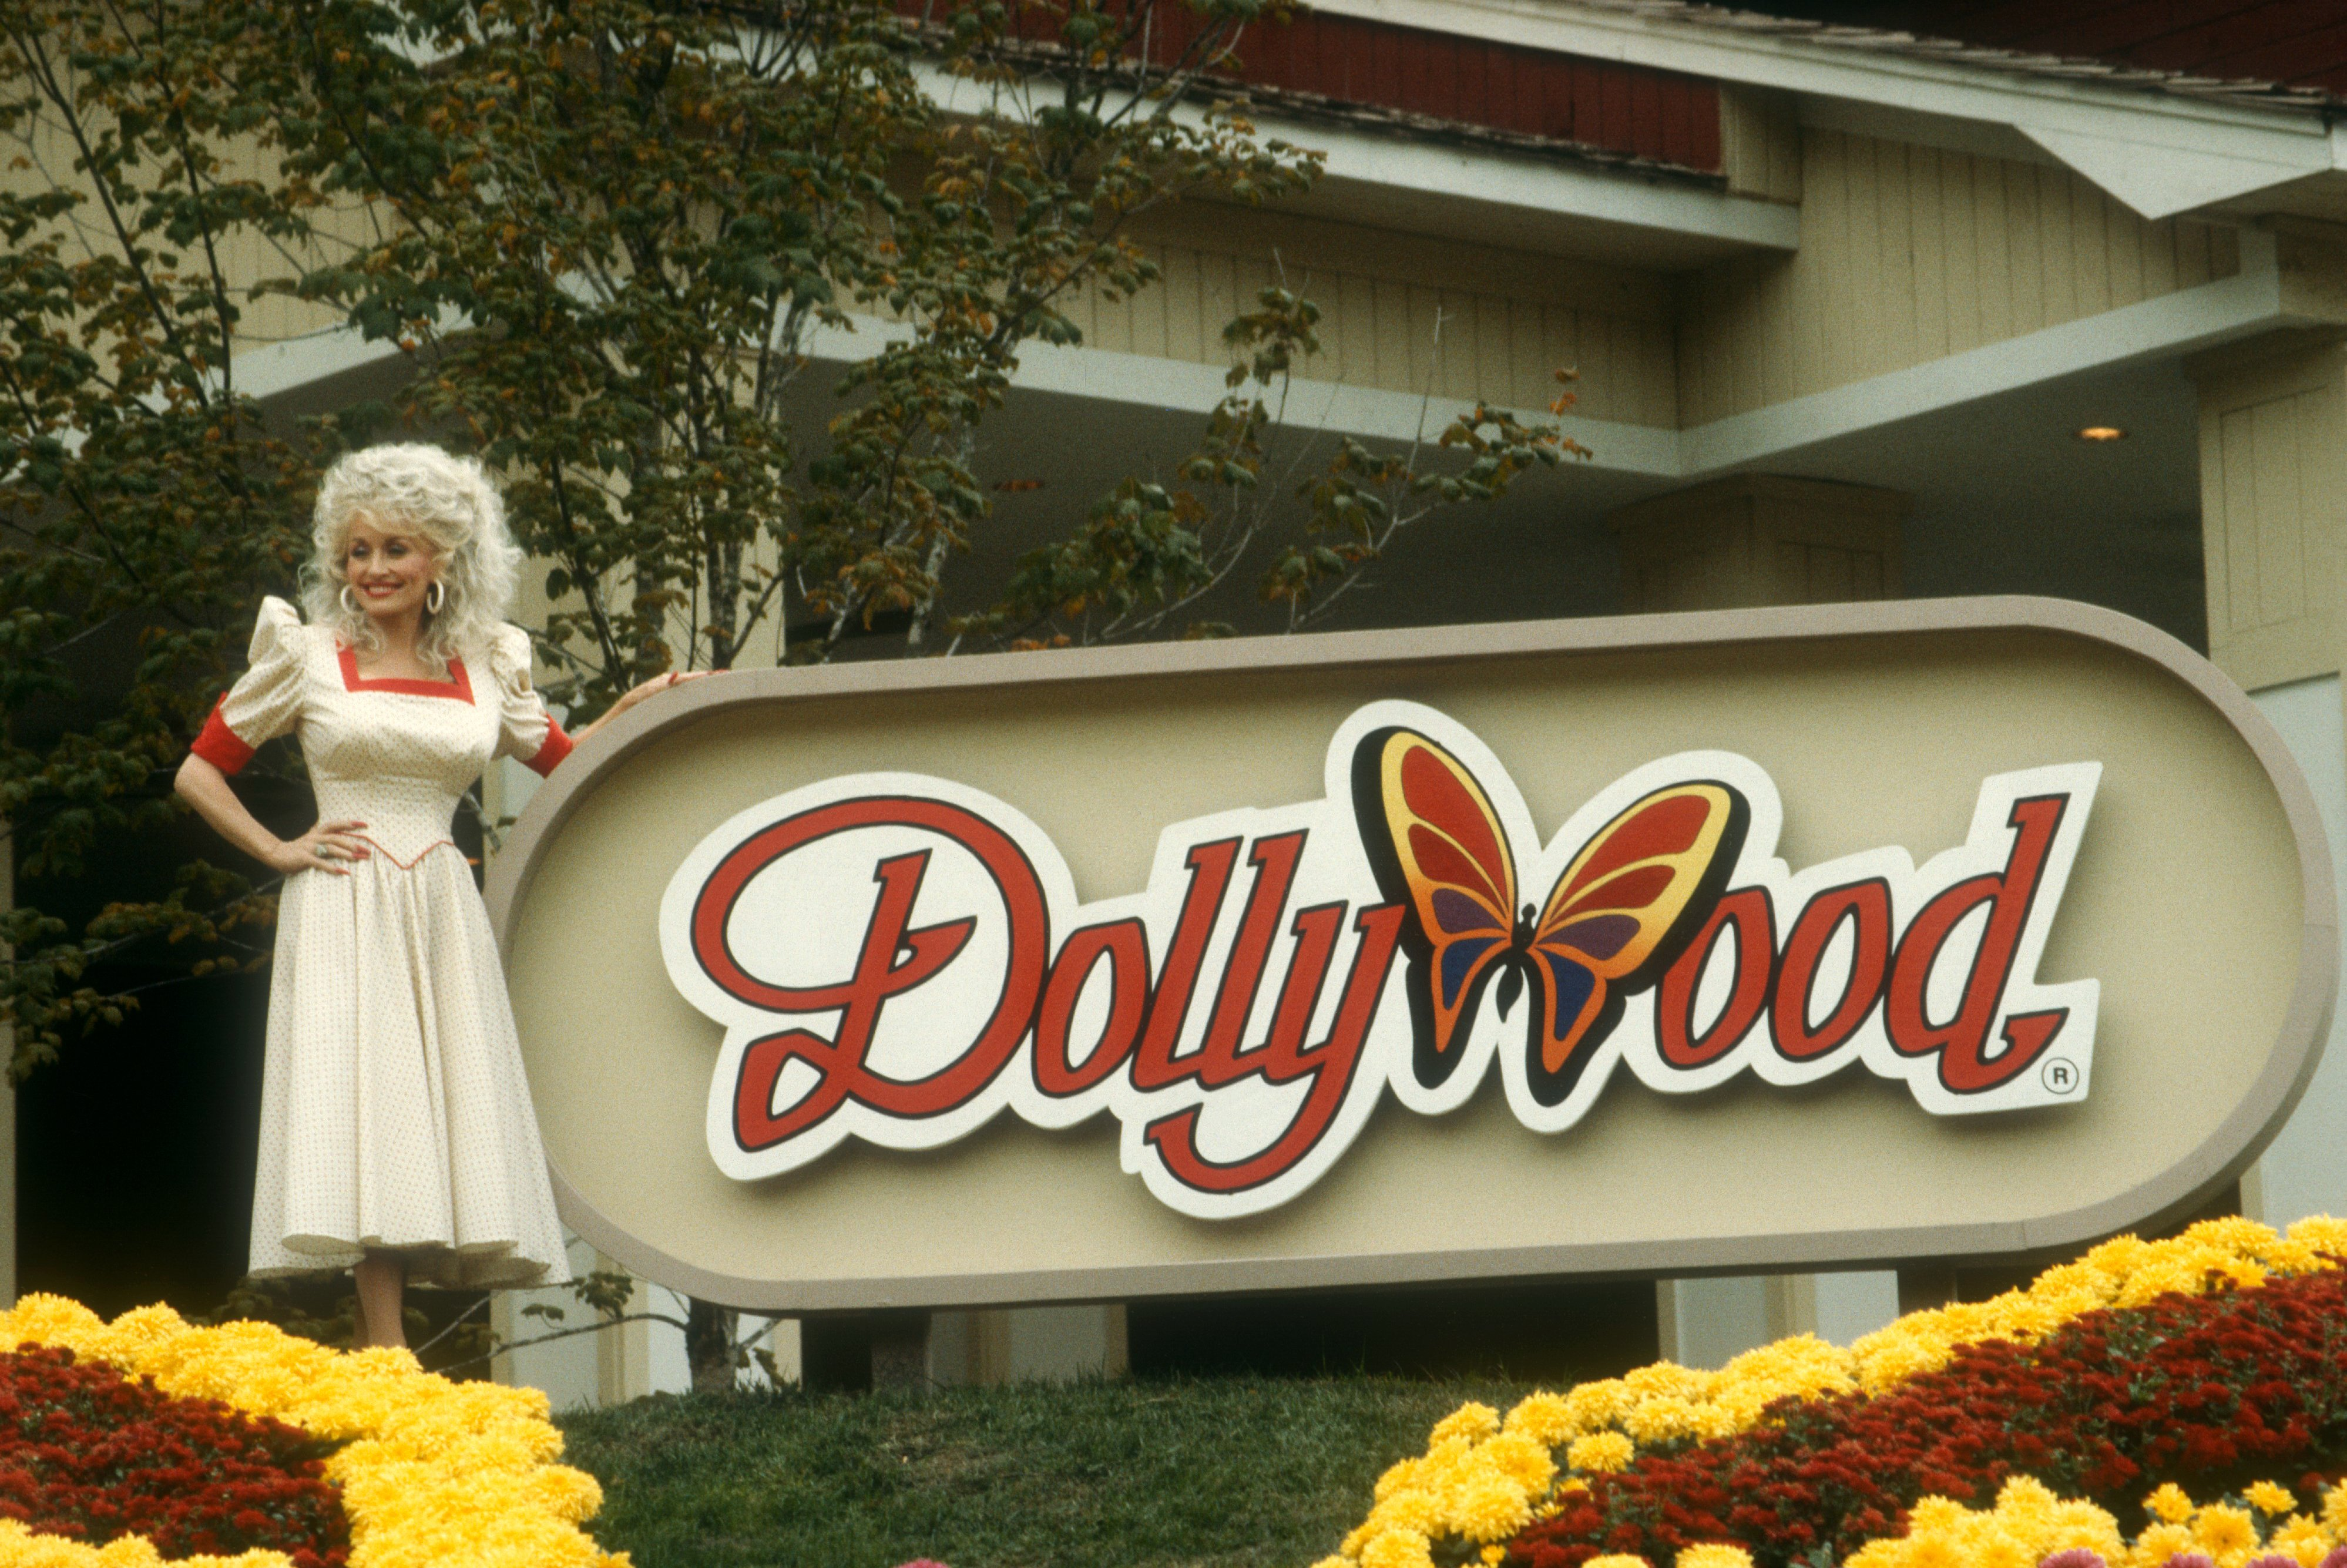 Image Credits: Getty Images / Ron Davis | American singer and songwriter Dolly Parton poses for a portrait at Dollywood on October 24, 1988 in Pigeon Forge, Tennessee.